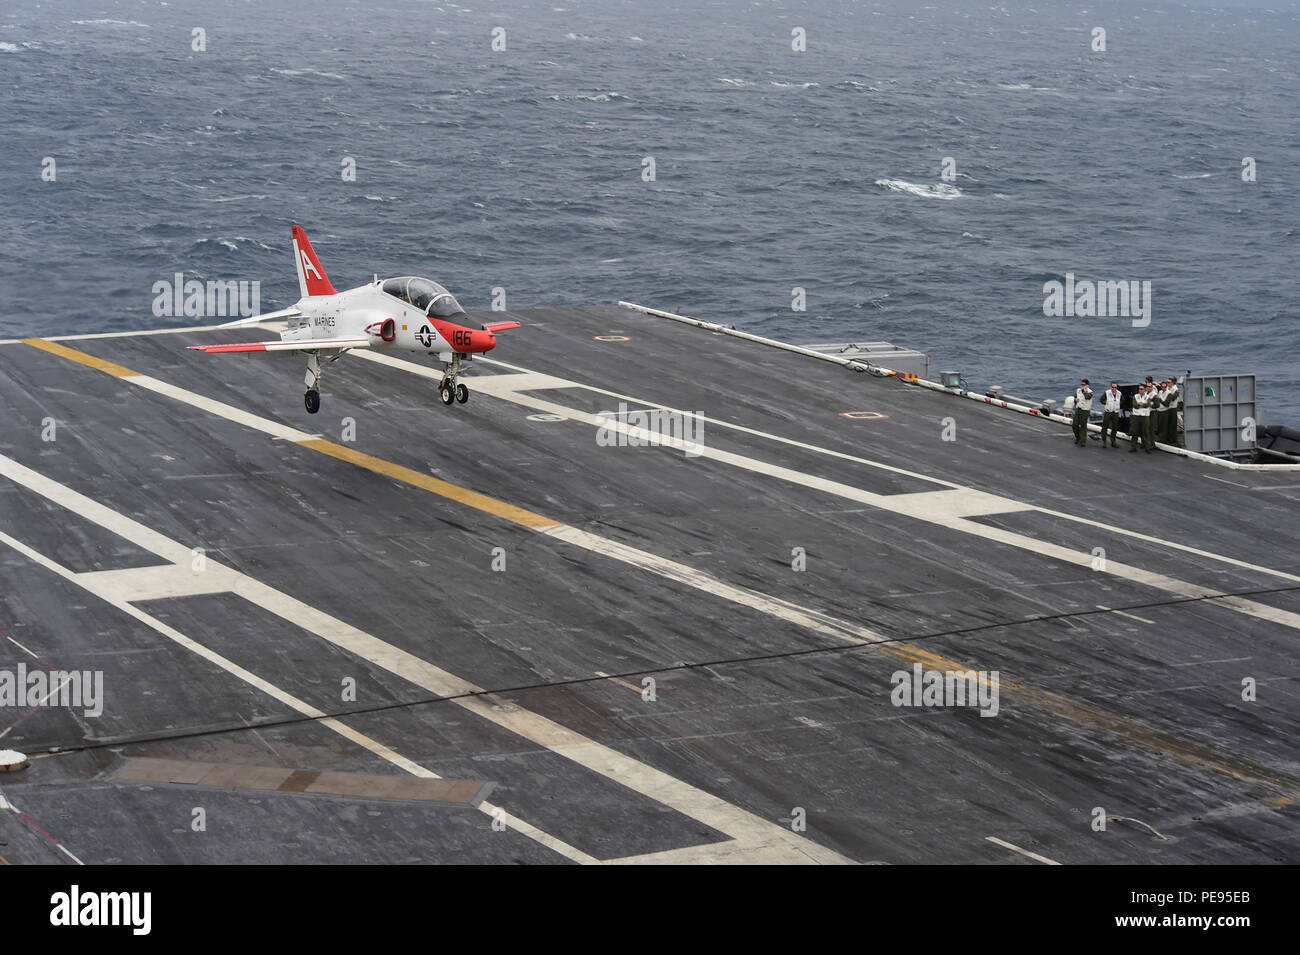 151108-N-QD363-123  ATLANTIC OCEAN (Nov. 8, 2015) – A T-45C Goshawk attached to Training Air Wing (CTW) 1 lands on the flight deck of the aircraft carrier USS Dwight D. Eisenhower (CVN 69). Dwight D. Eisenhower is underway conducting carrier qualifications. (U.S. Navy photo by Mass Communication Specialist 3rd Class Jameson E. Lynch/Released) - Stock Image